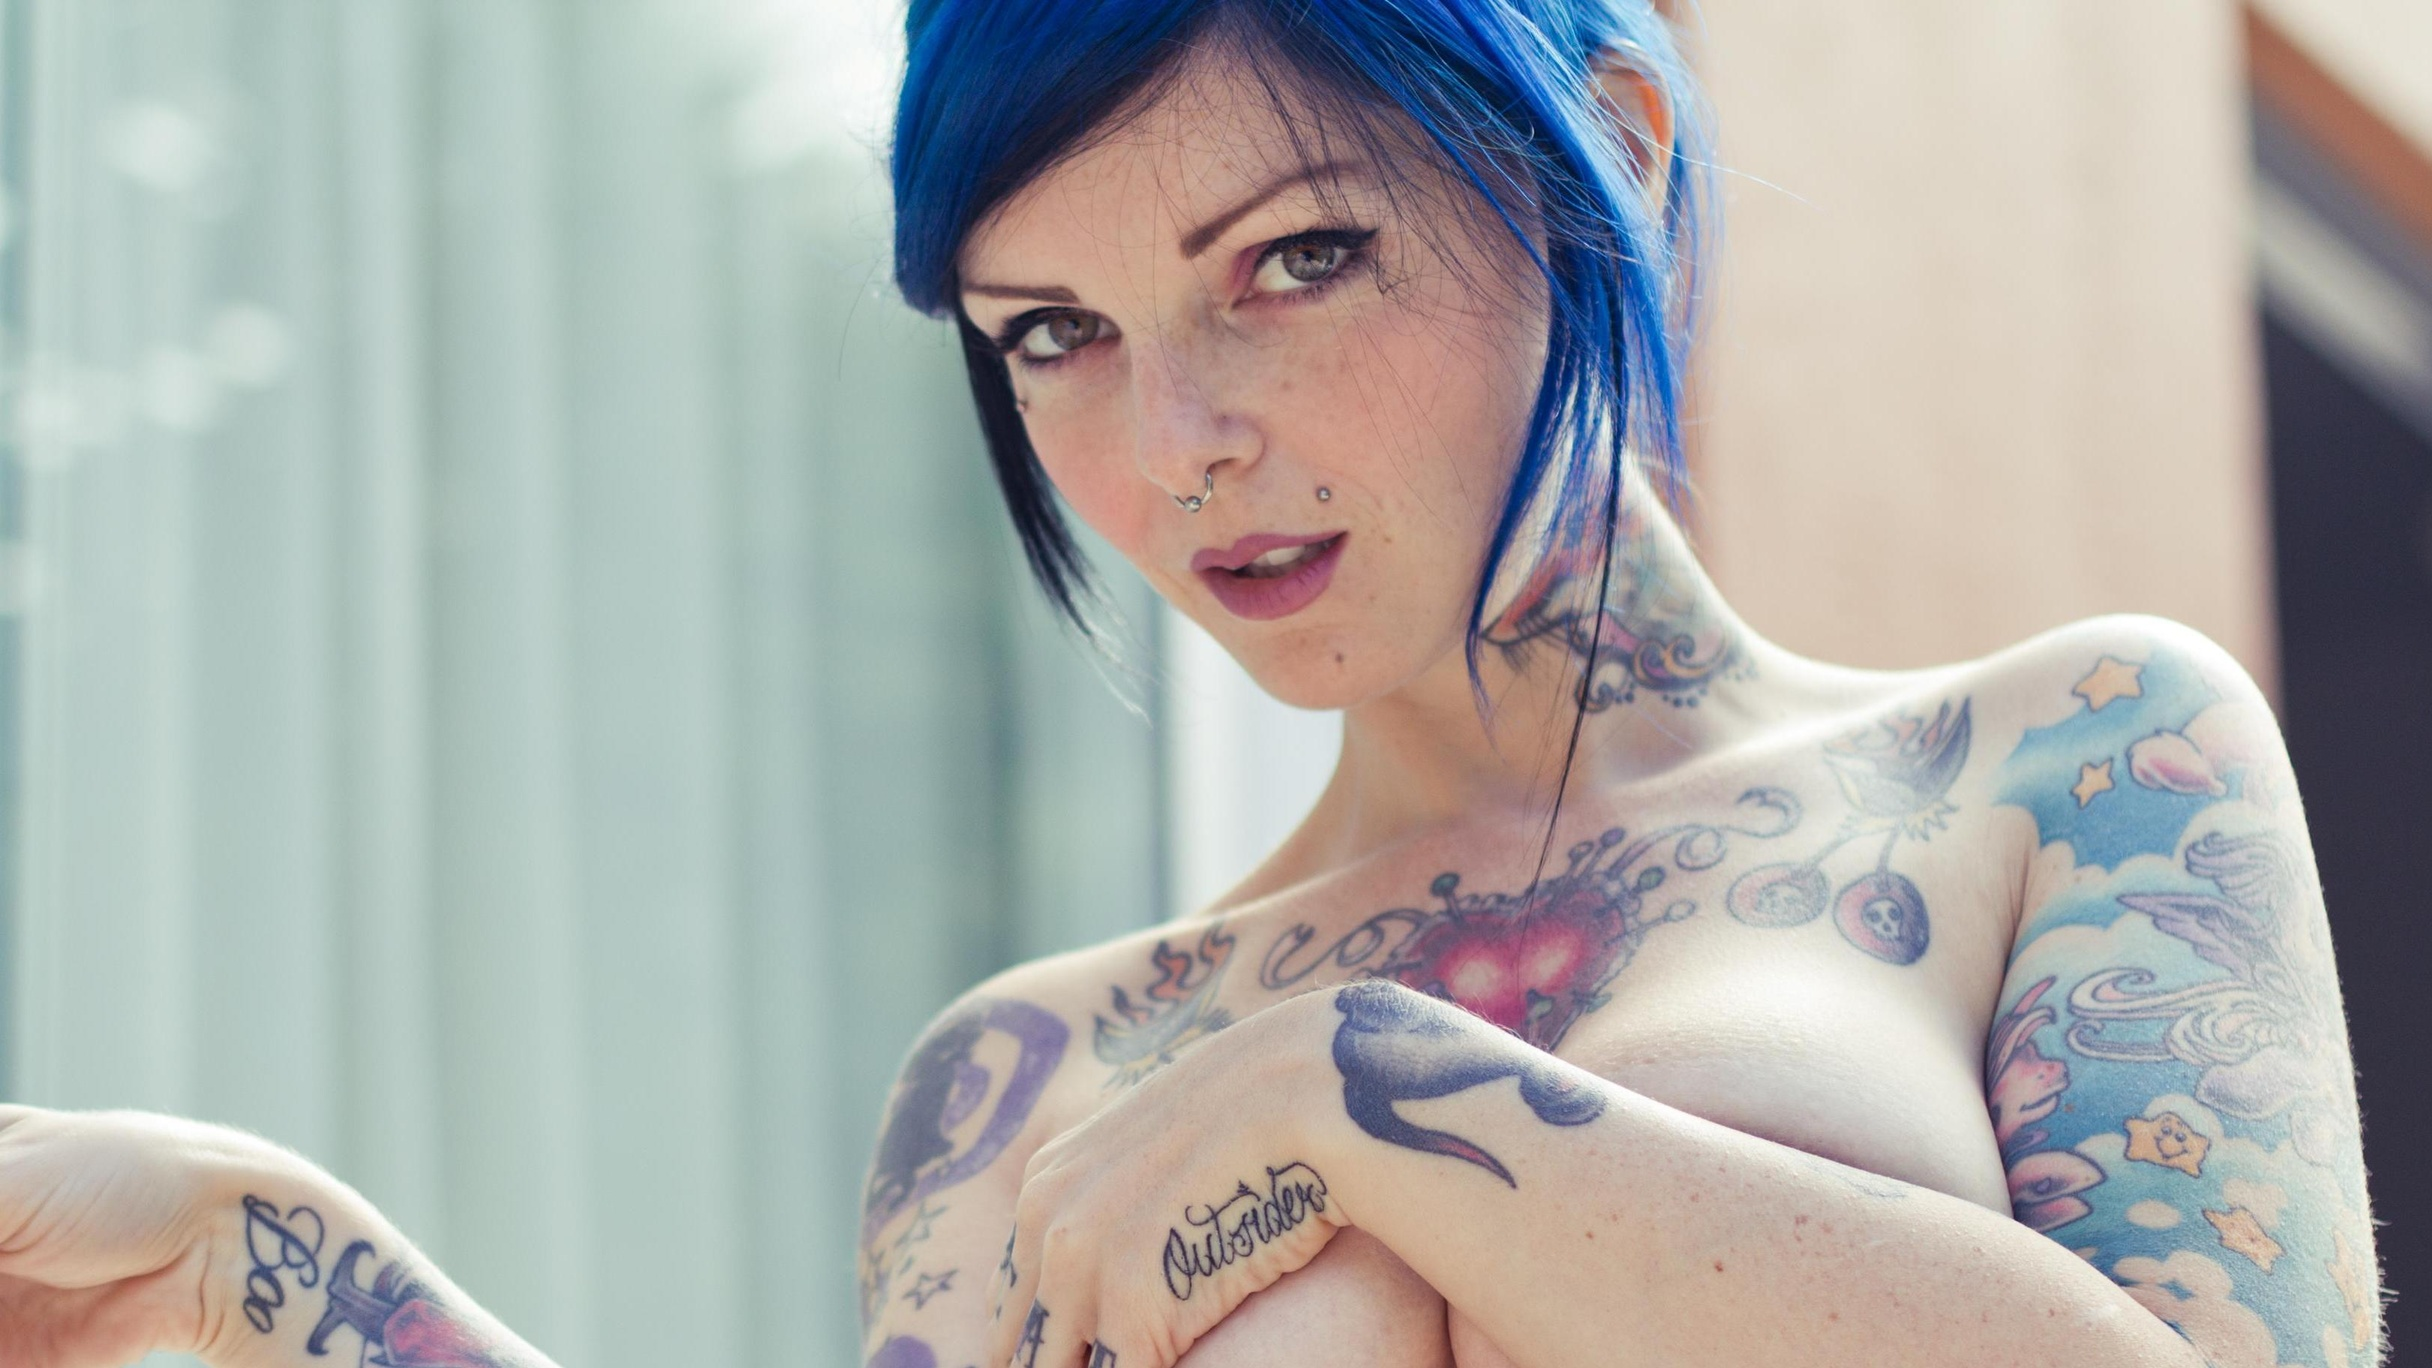 Riae Suicide  - Hidden Garde suicidegirls @riae portugal,wolfstyle,blue,hair,sglx